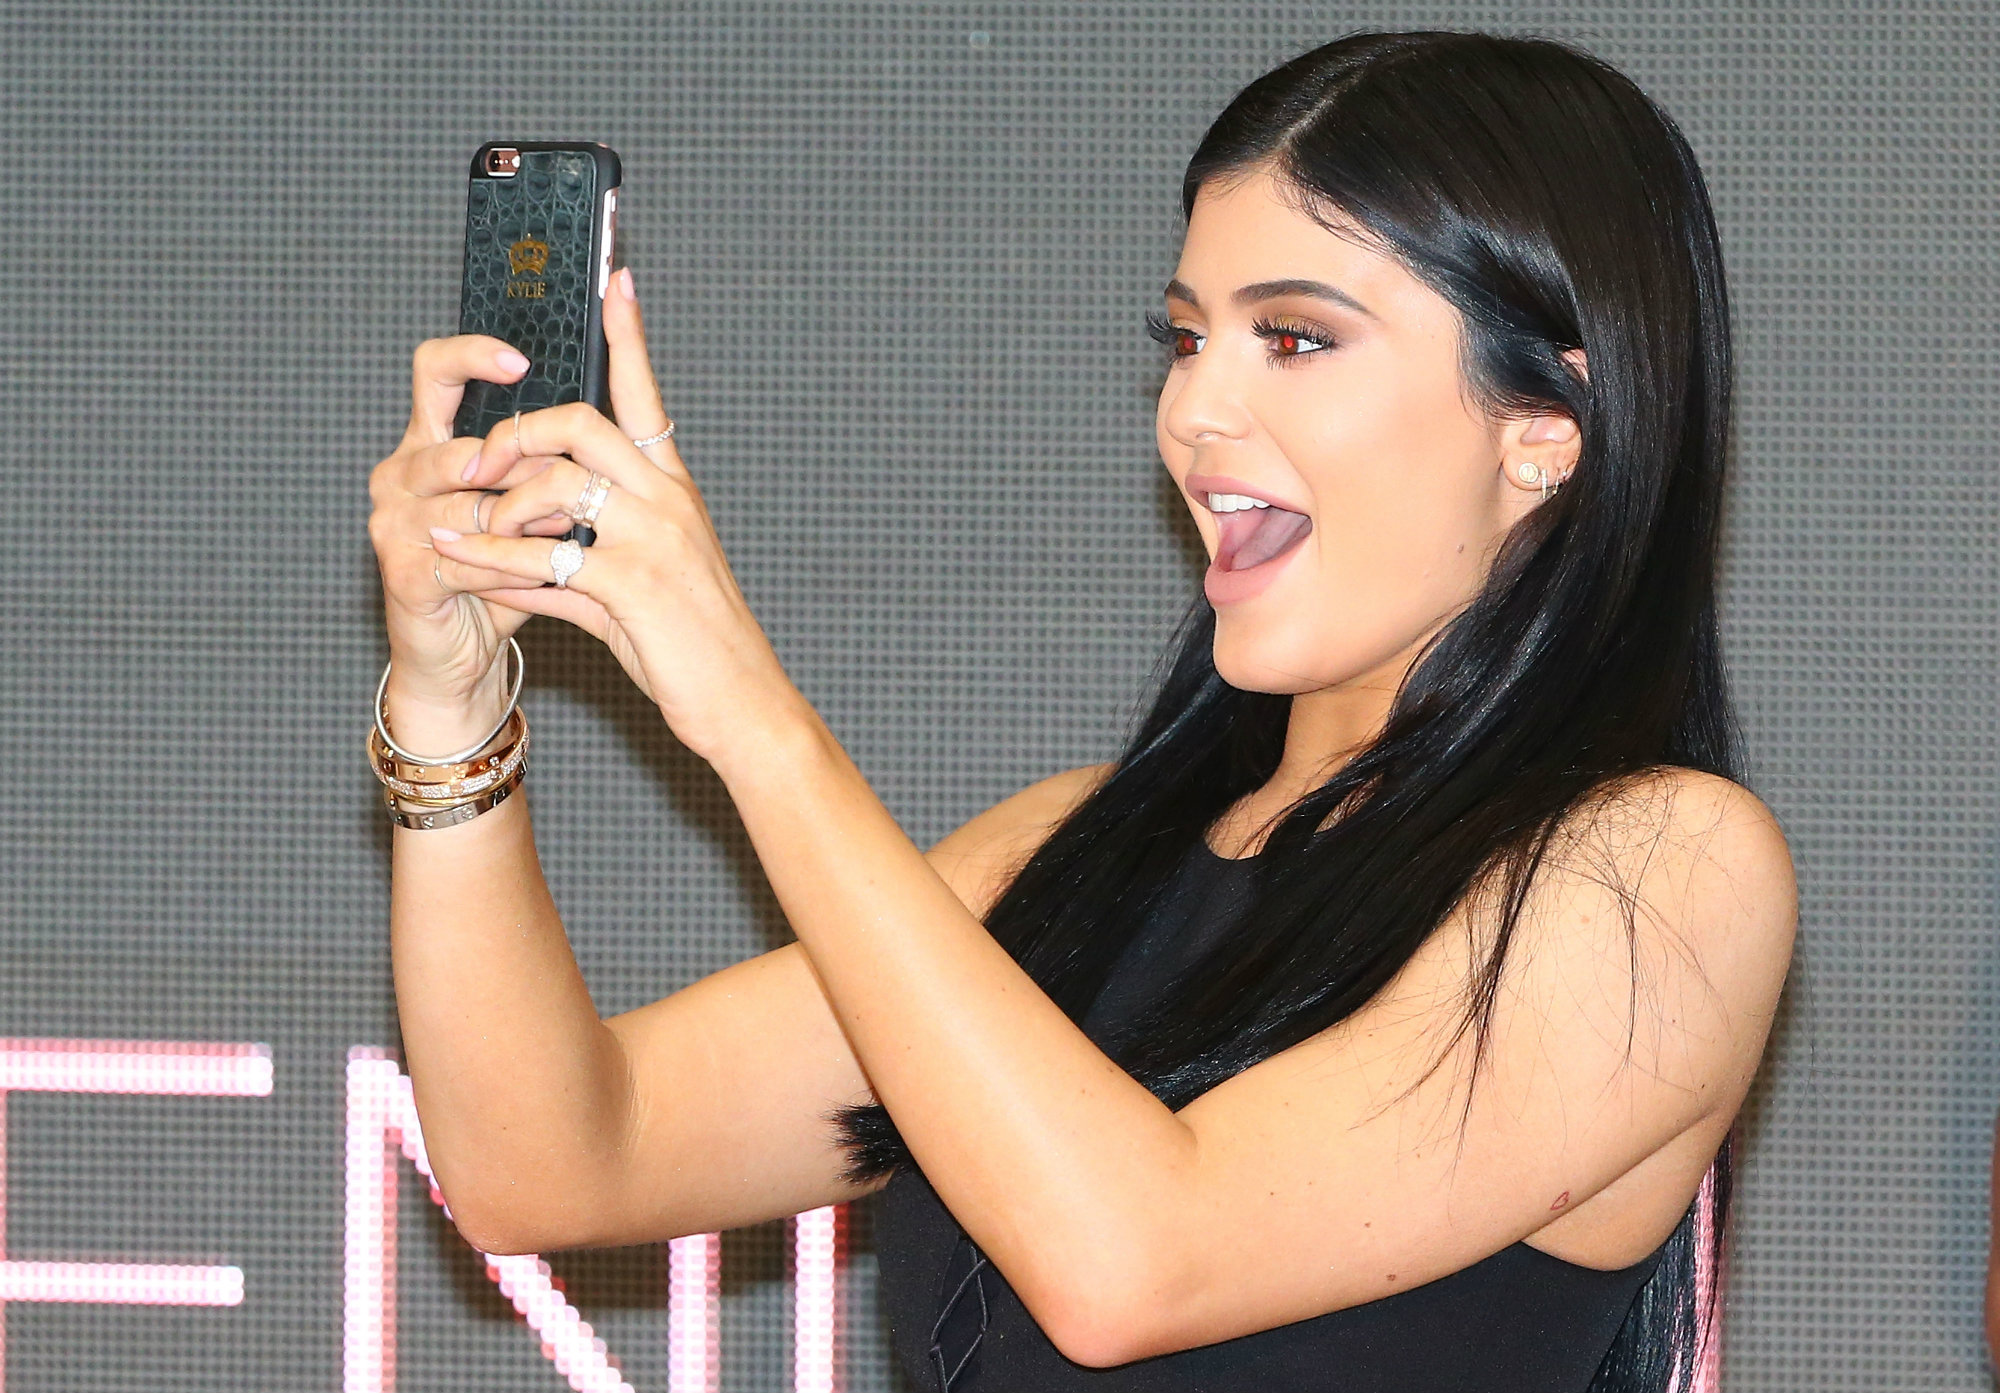 Why Kylie Jenner May Be to Blame for Snapchat's Recent $1 Billion Loss in Value